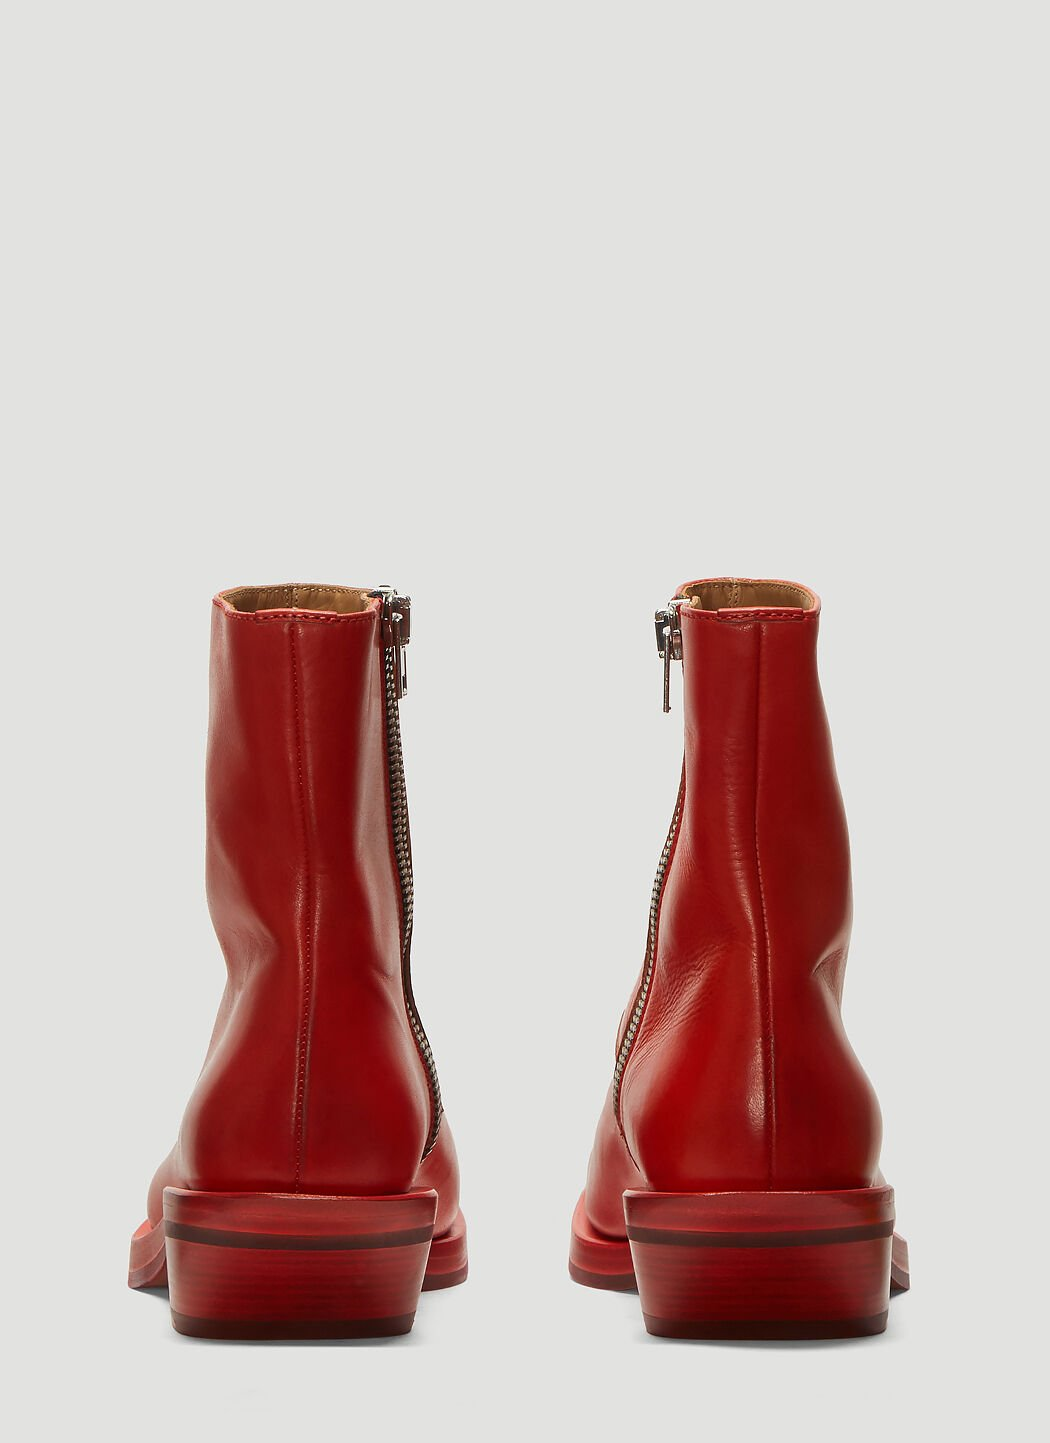 ION Number 5 Boots in Red | LN CC